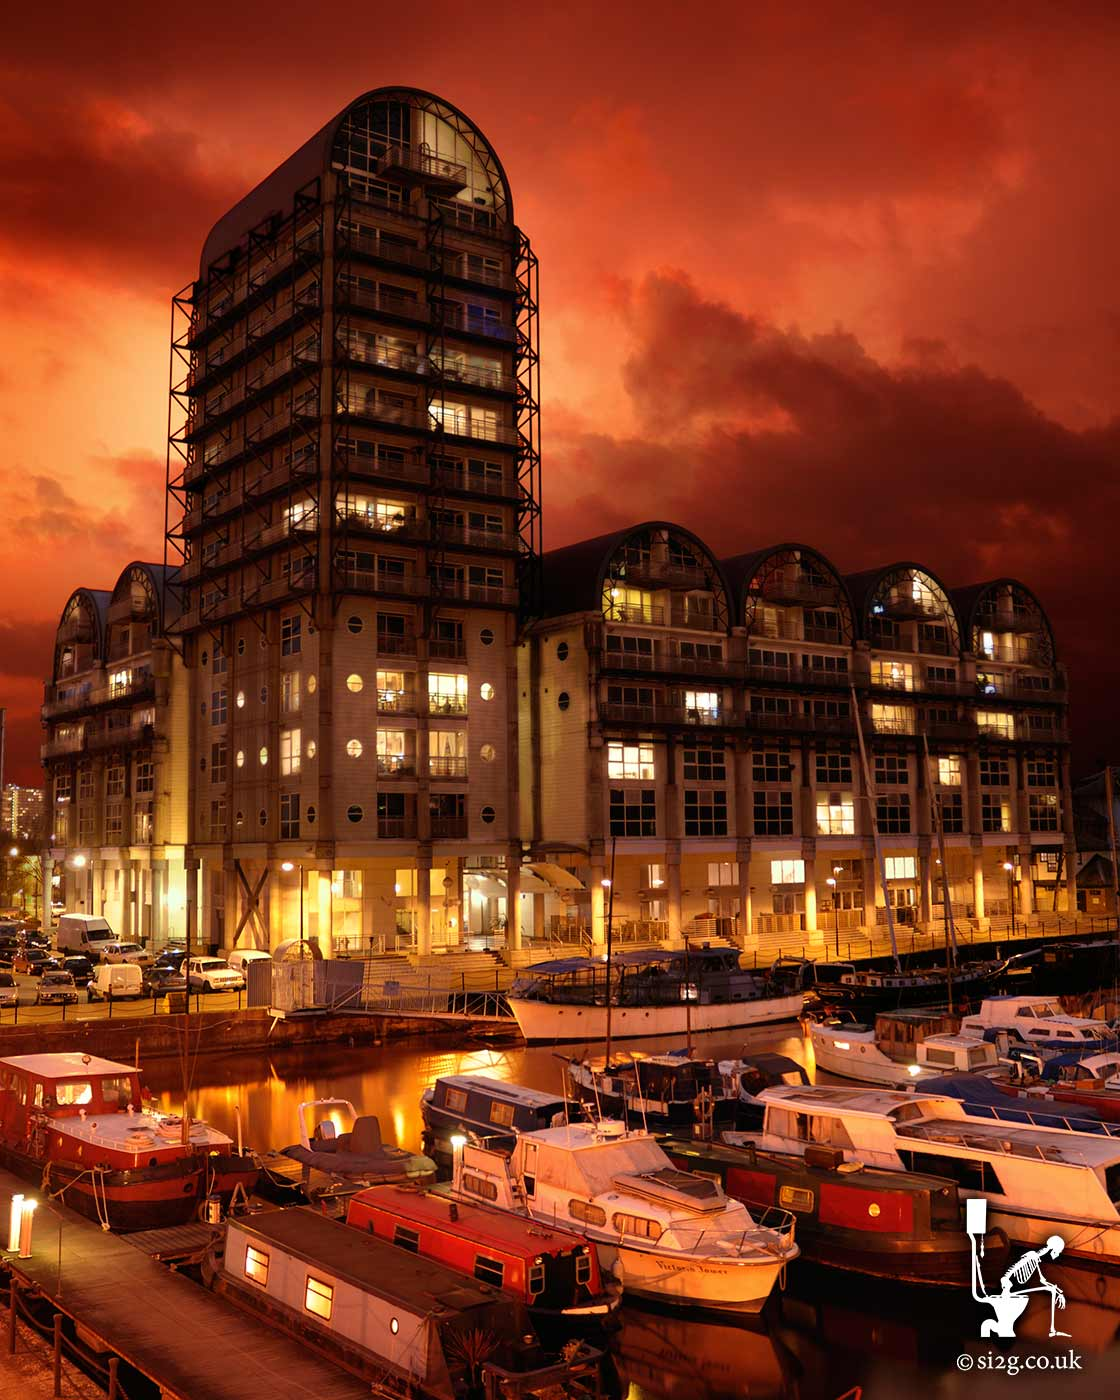 Baltic Quay - This HDR photo is a composite of around 8 or 9 photos taken at various times during the day and evening.  The effect is this powerful and dramatic image of the Baltic Quay apartments in South London and their view of the marina.